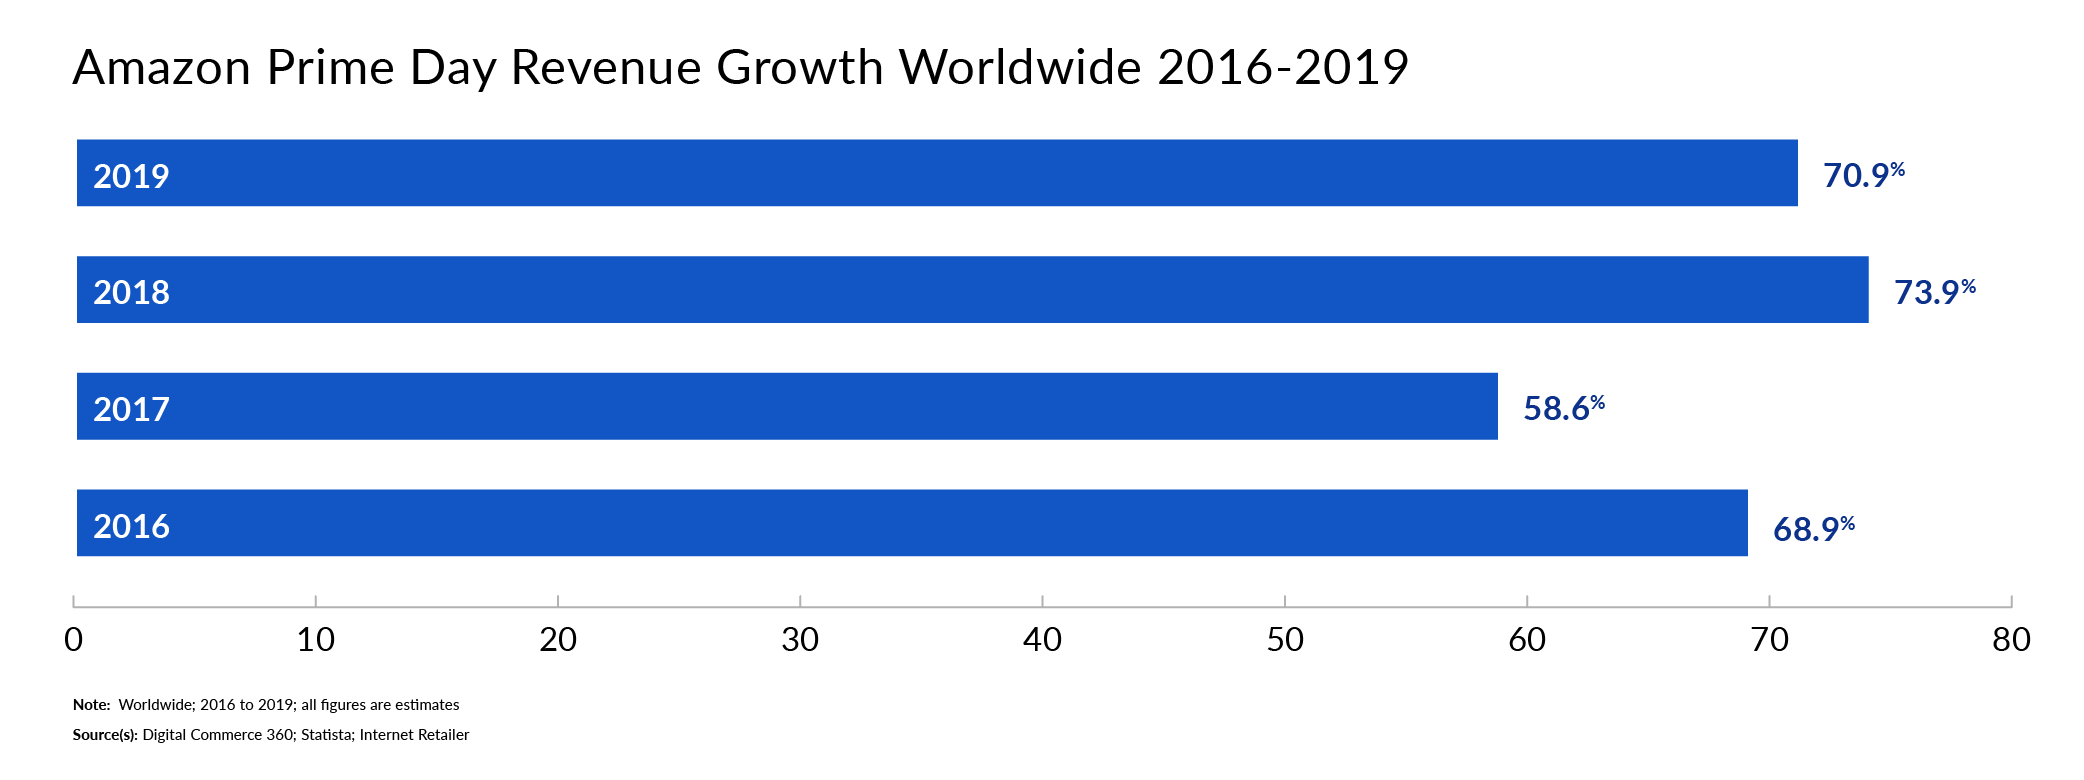 Amazon Prime Day Growth